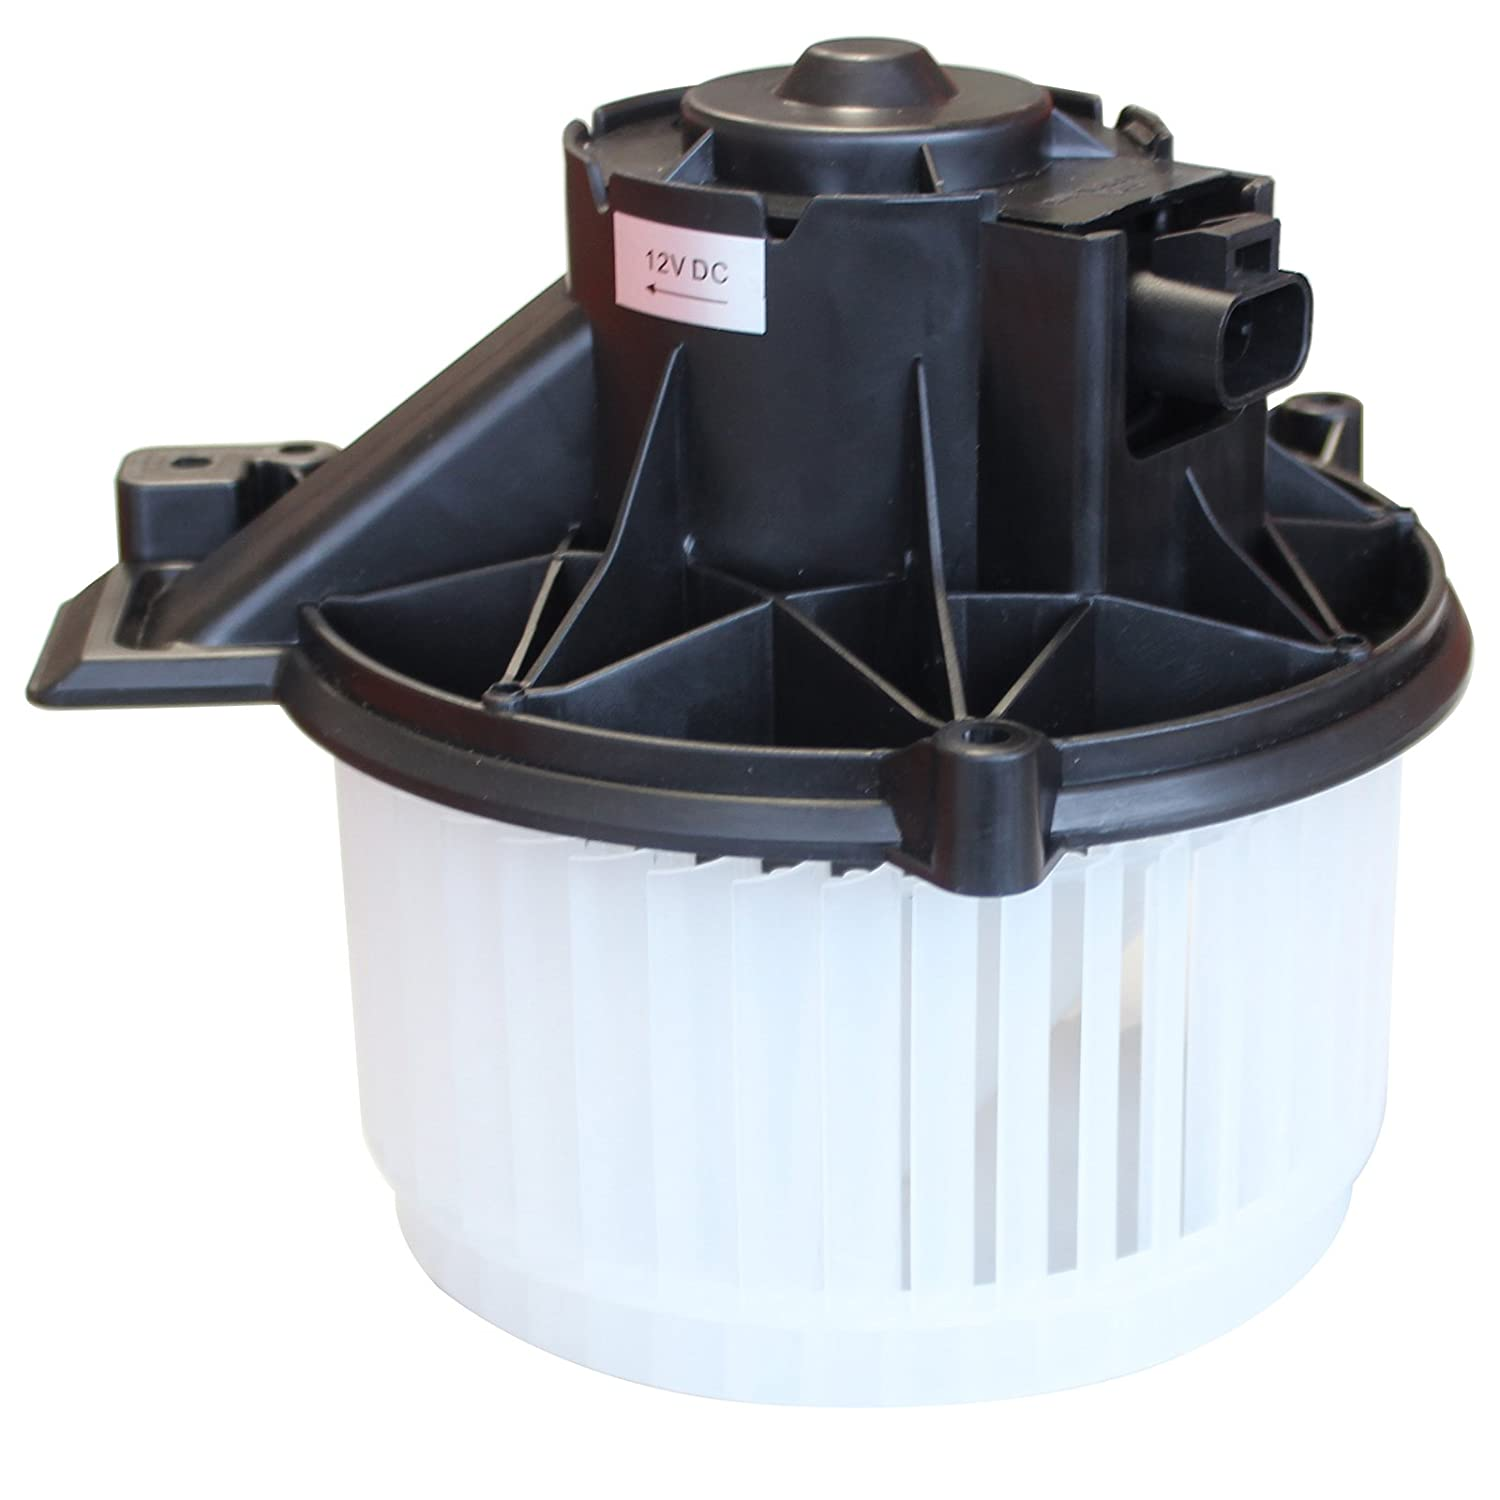 SCITOO Heater Blower Motor ABS Plastic w//Fan Motor fit 2006 Lincoln Zephyr 2006 Lincoln Zephyr Premium 2006-2009 Ford Fusion S 2006-2009 Ford Fusion SE 058447-5206-1716141